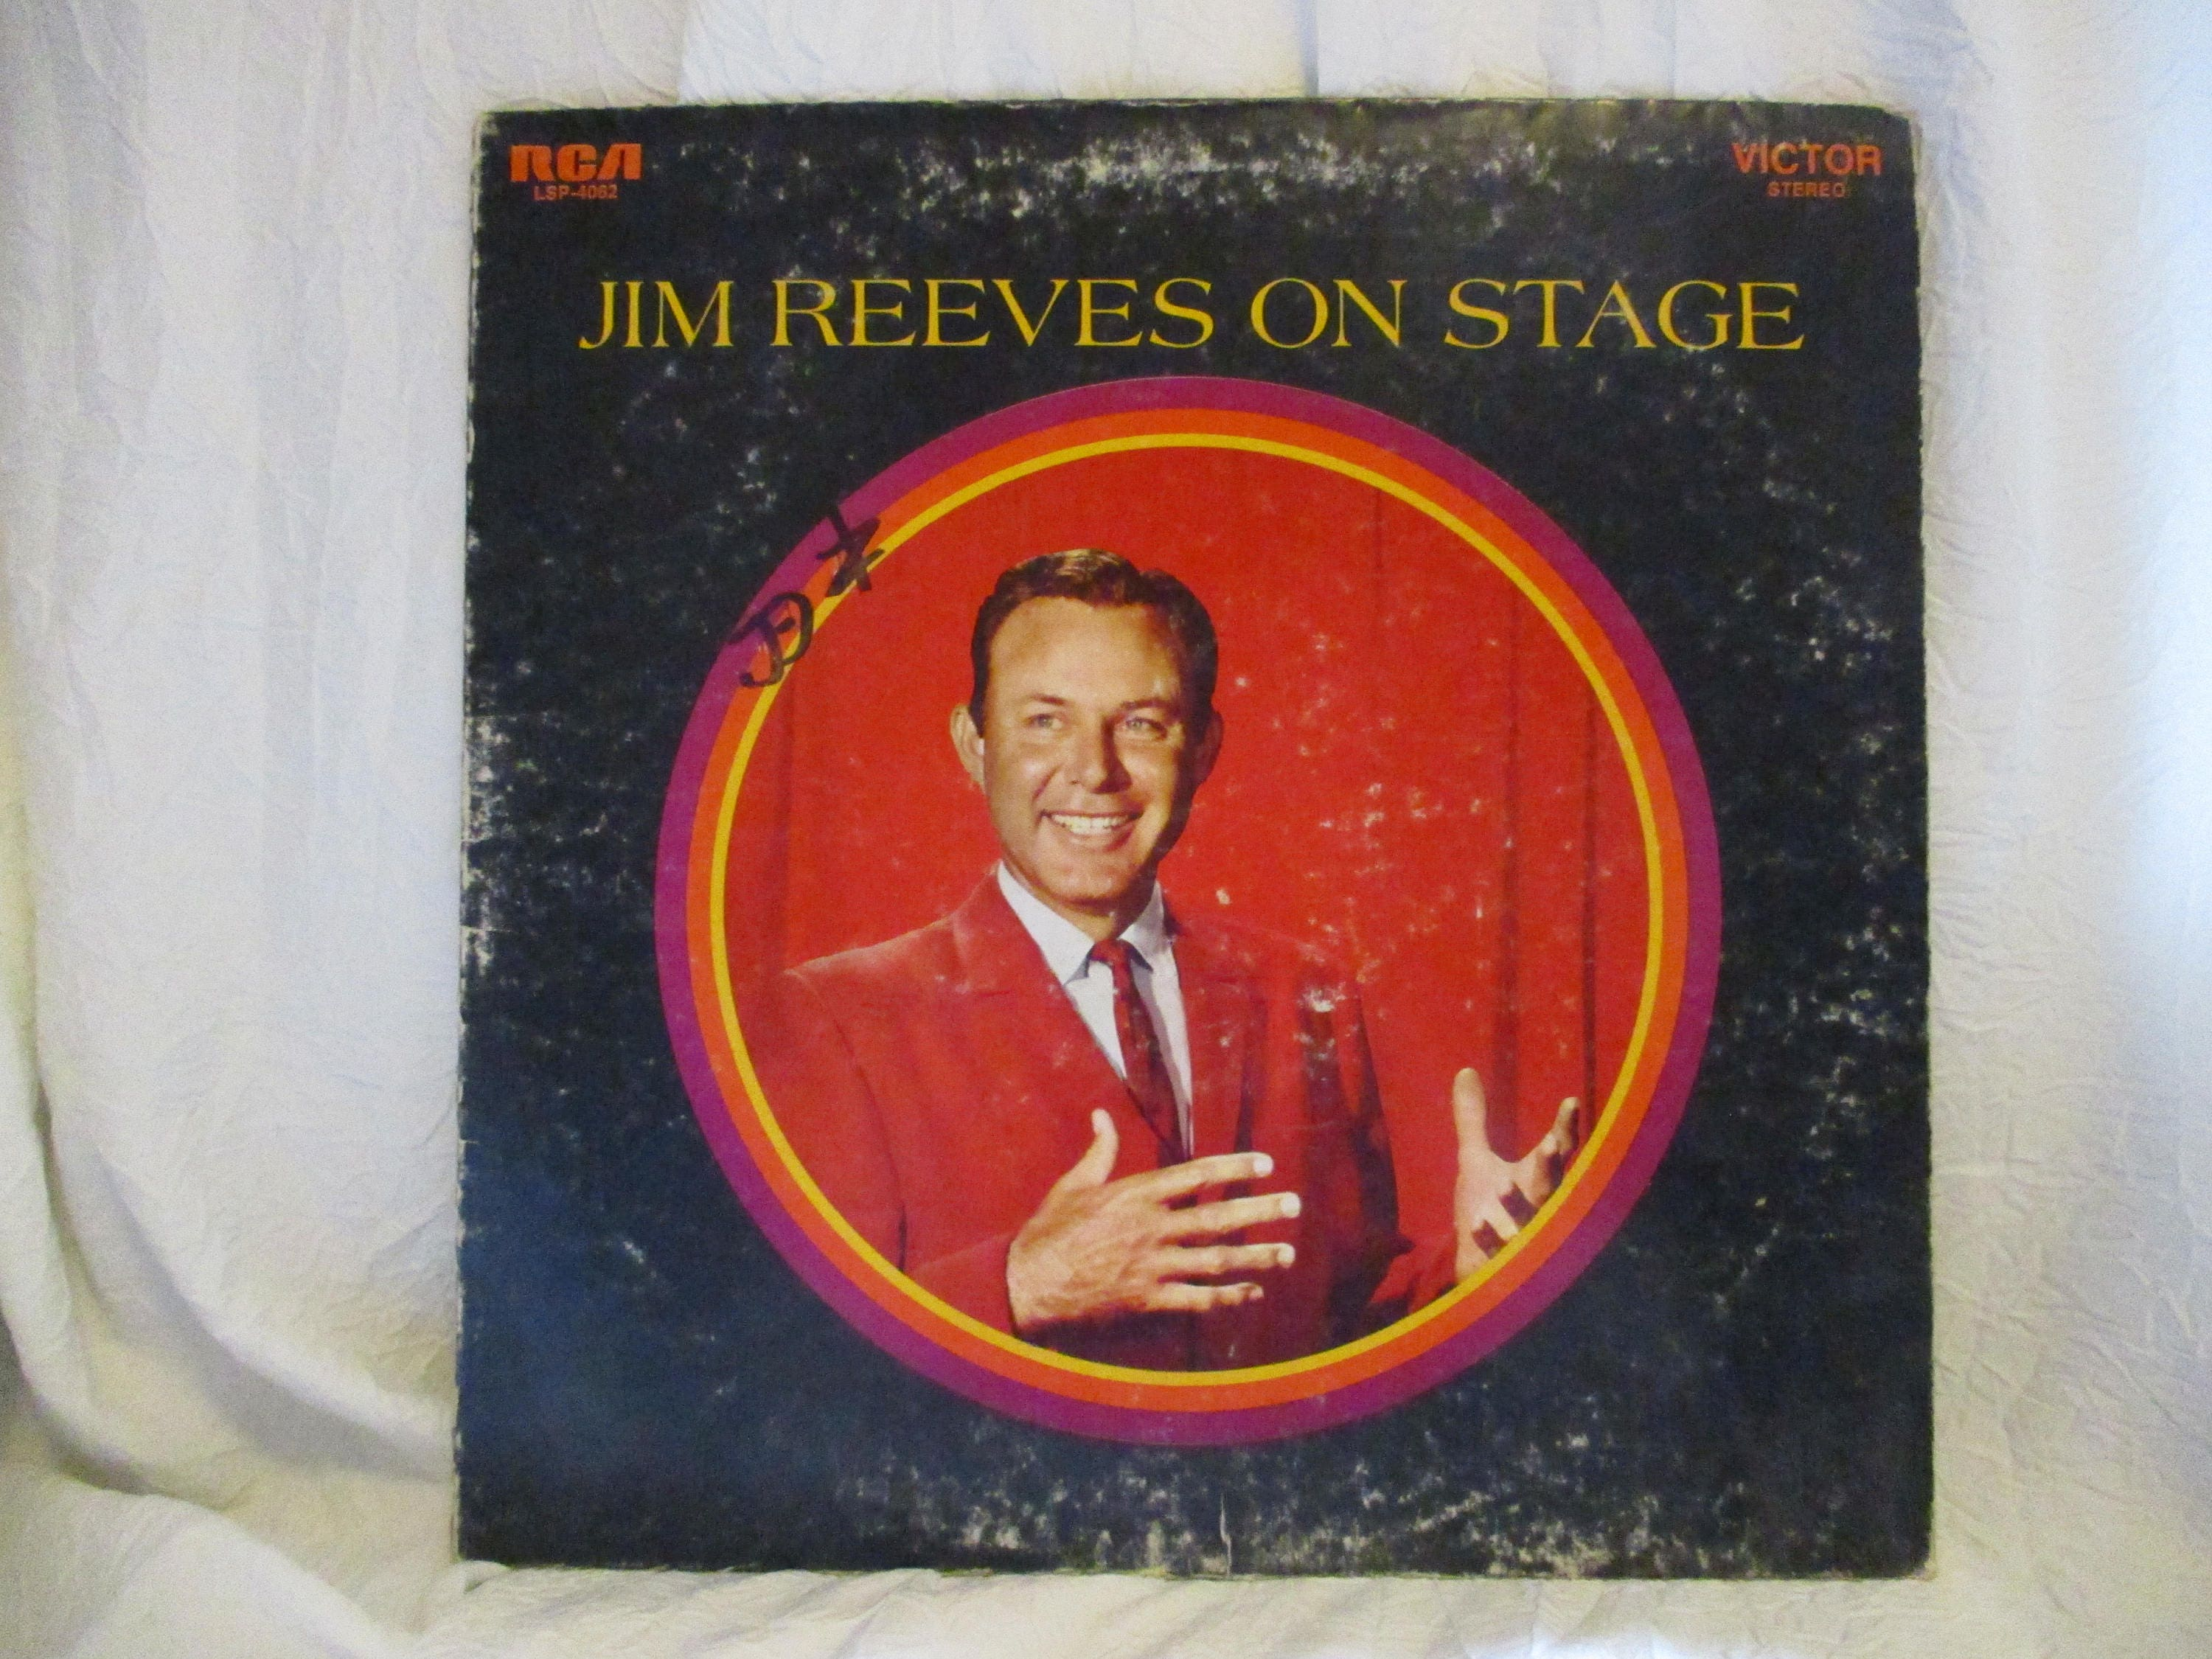 Jim Reeves on Stage Record LP Album | Etsy